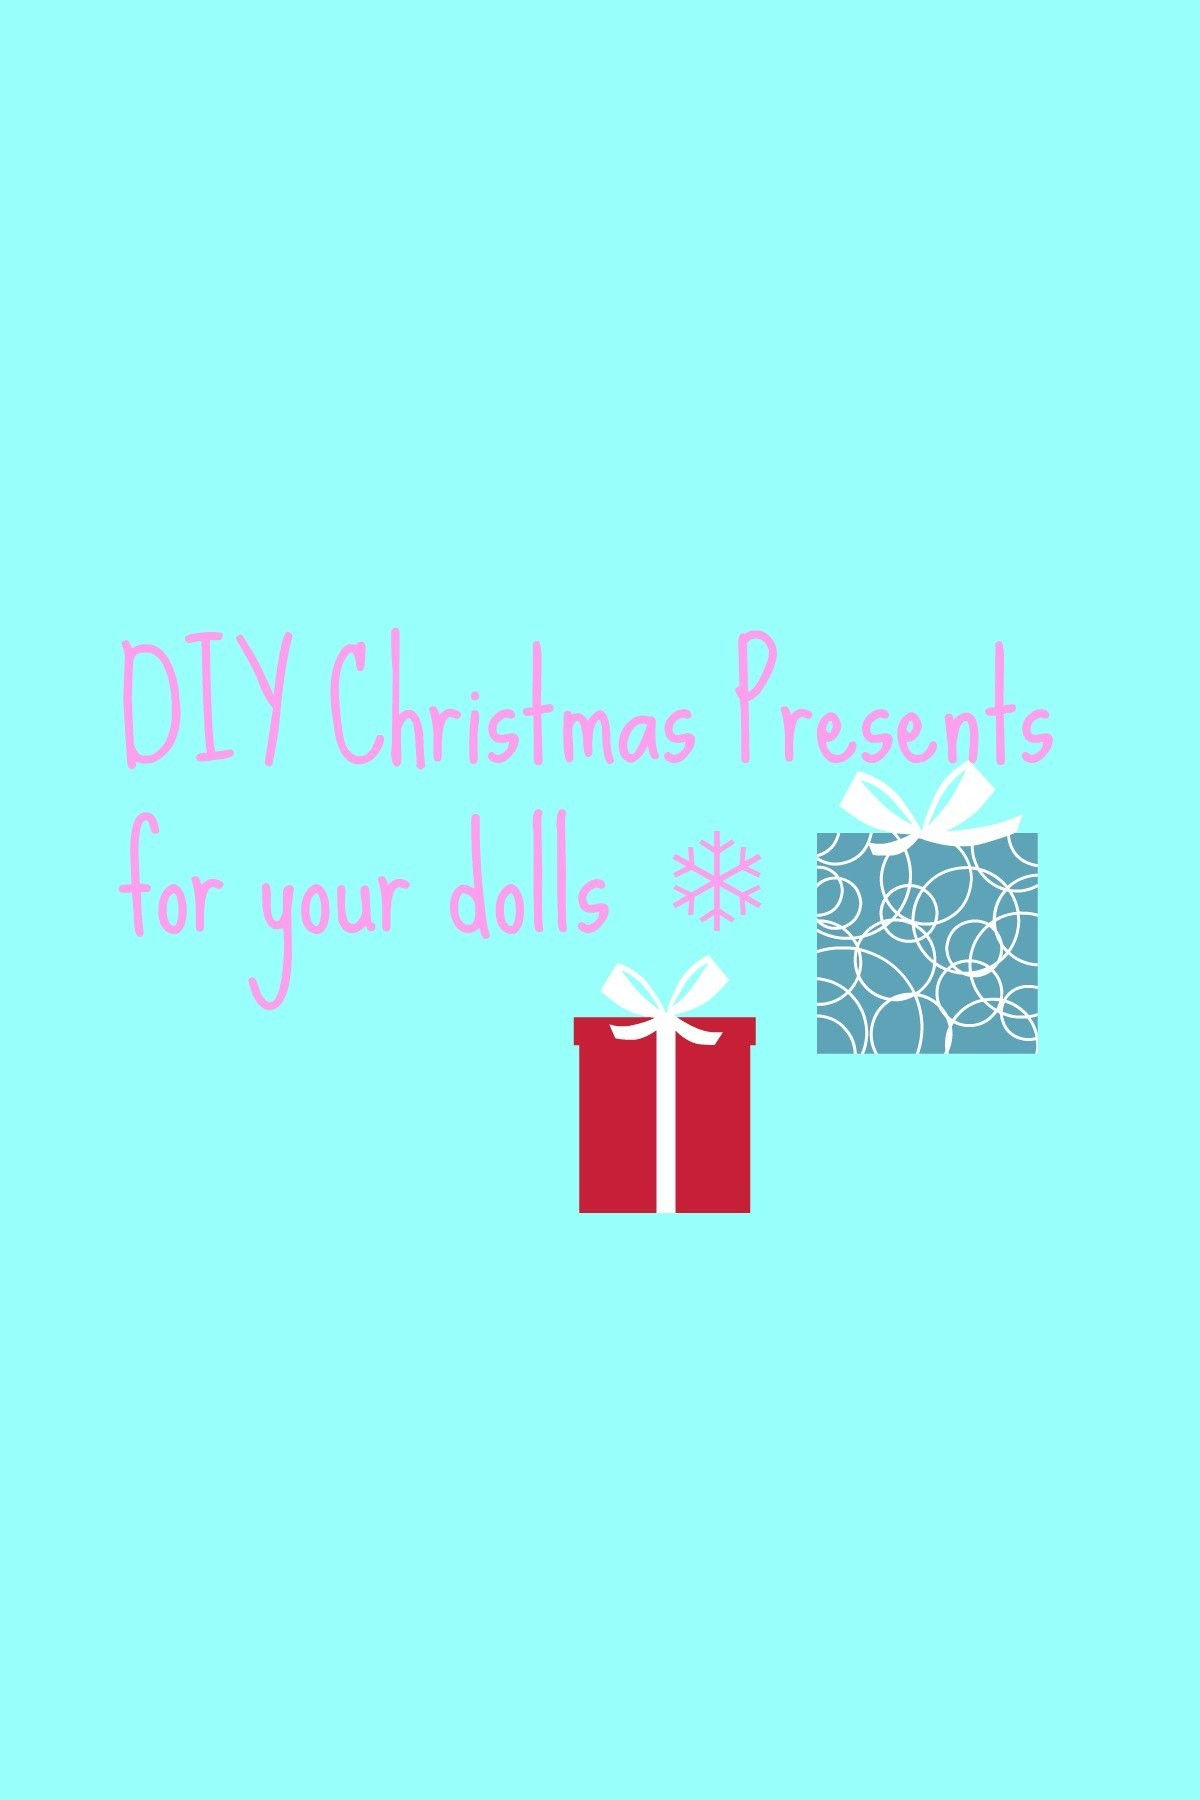 DIY Christmas Presents for your dolls ♥